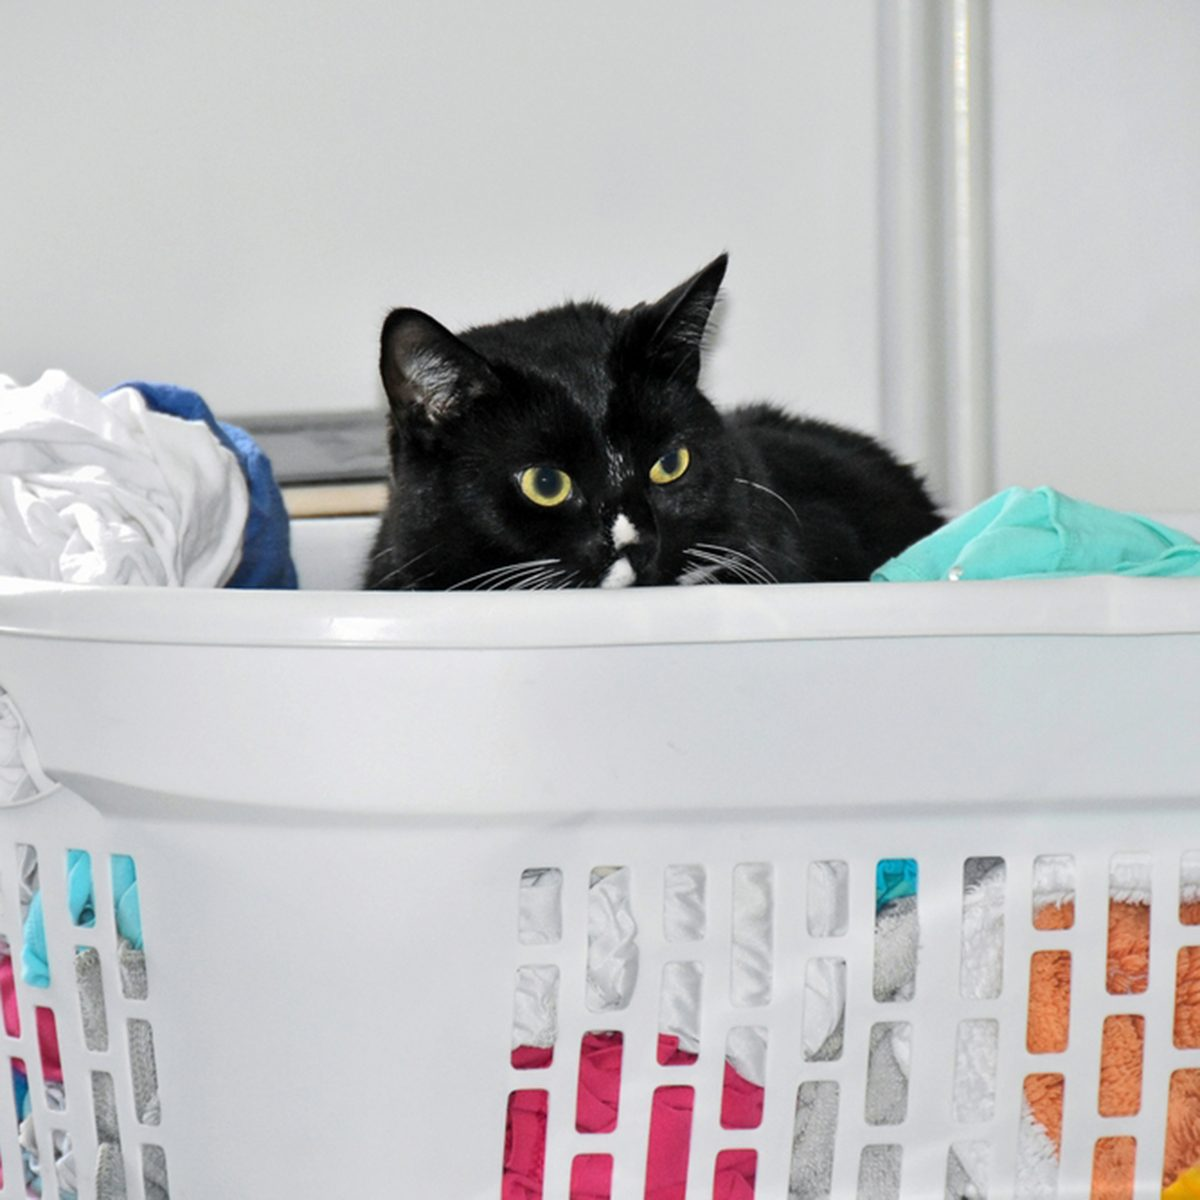 black cat in white laundry basket with clean clothing